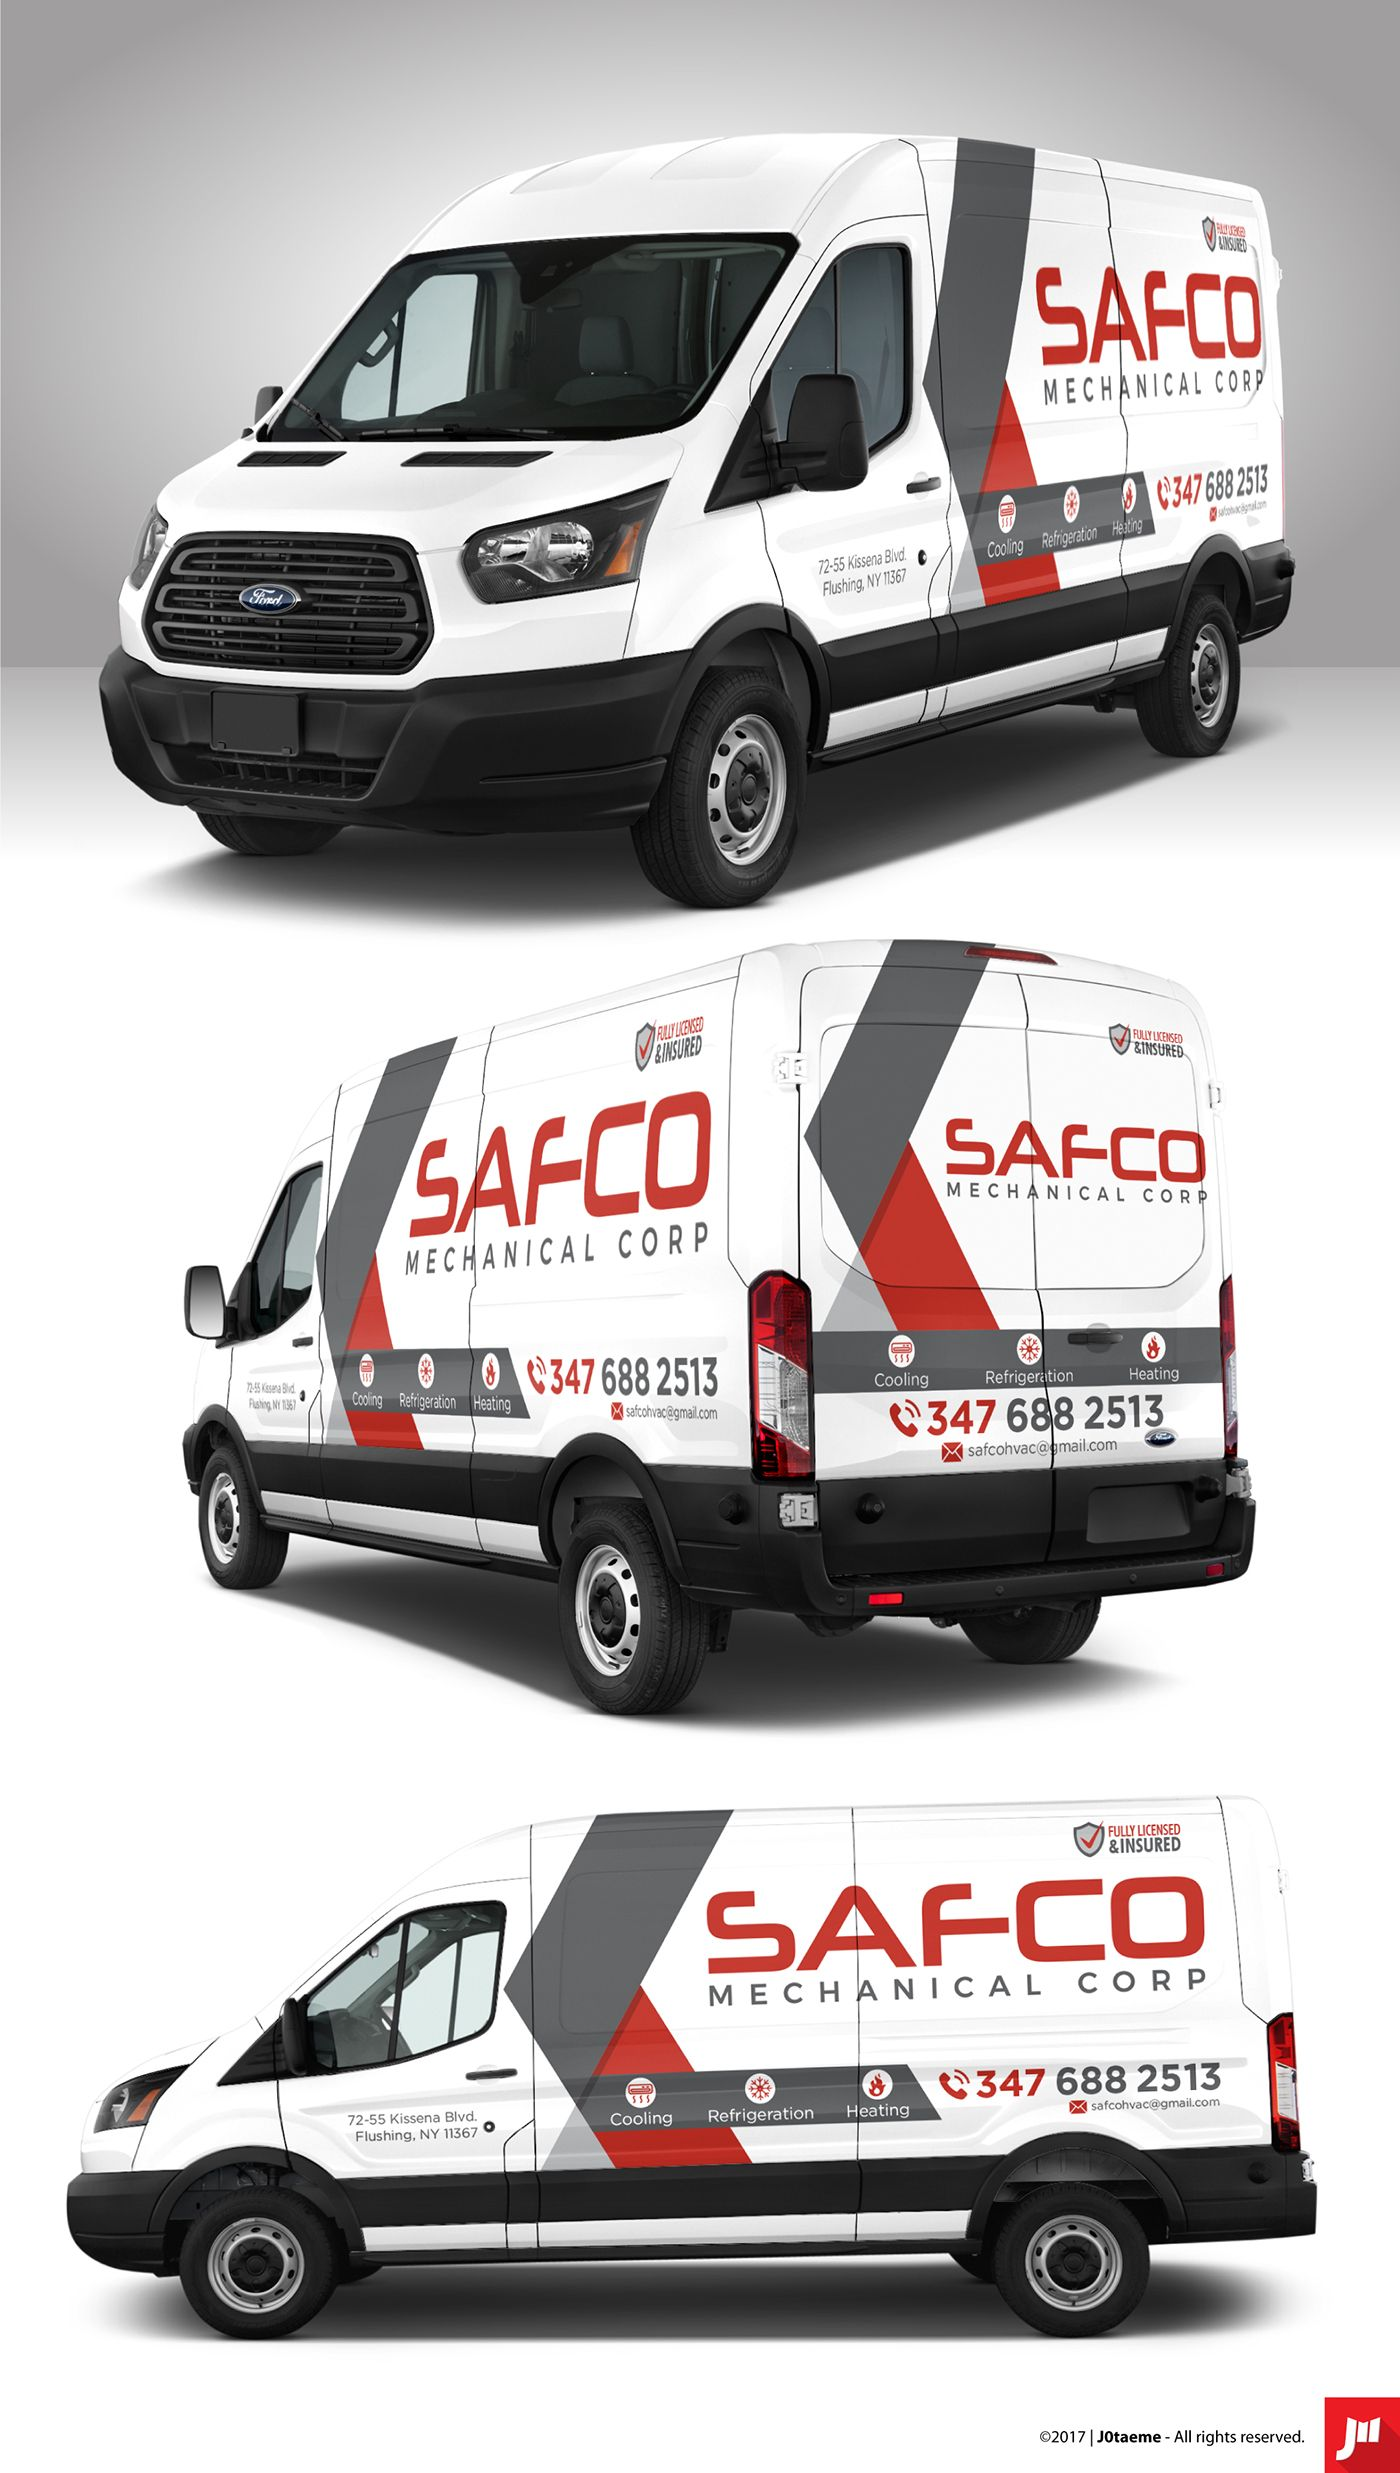 Professional Decals Based On The Name Of The Company And The